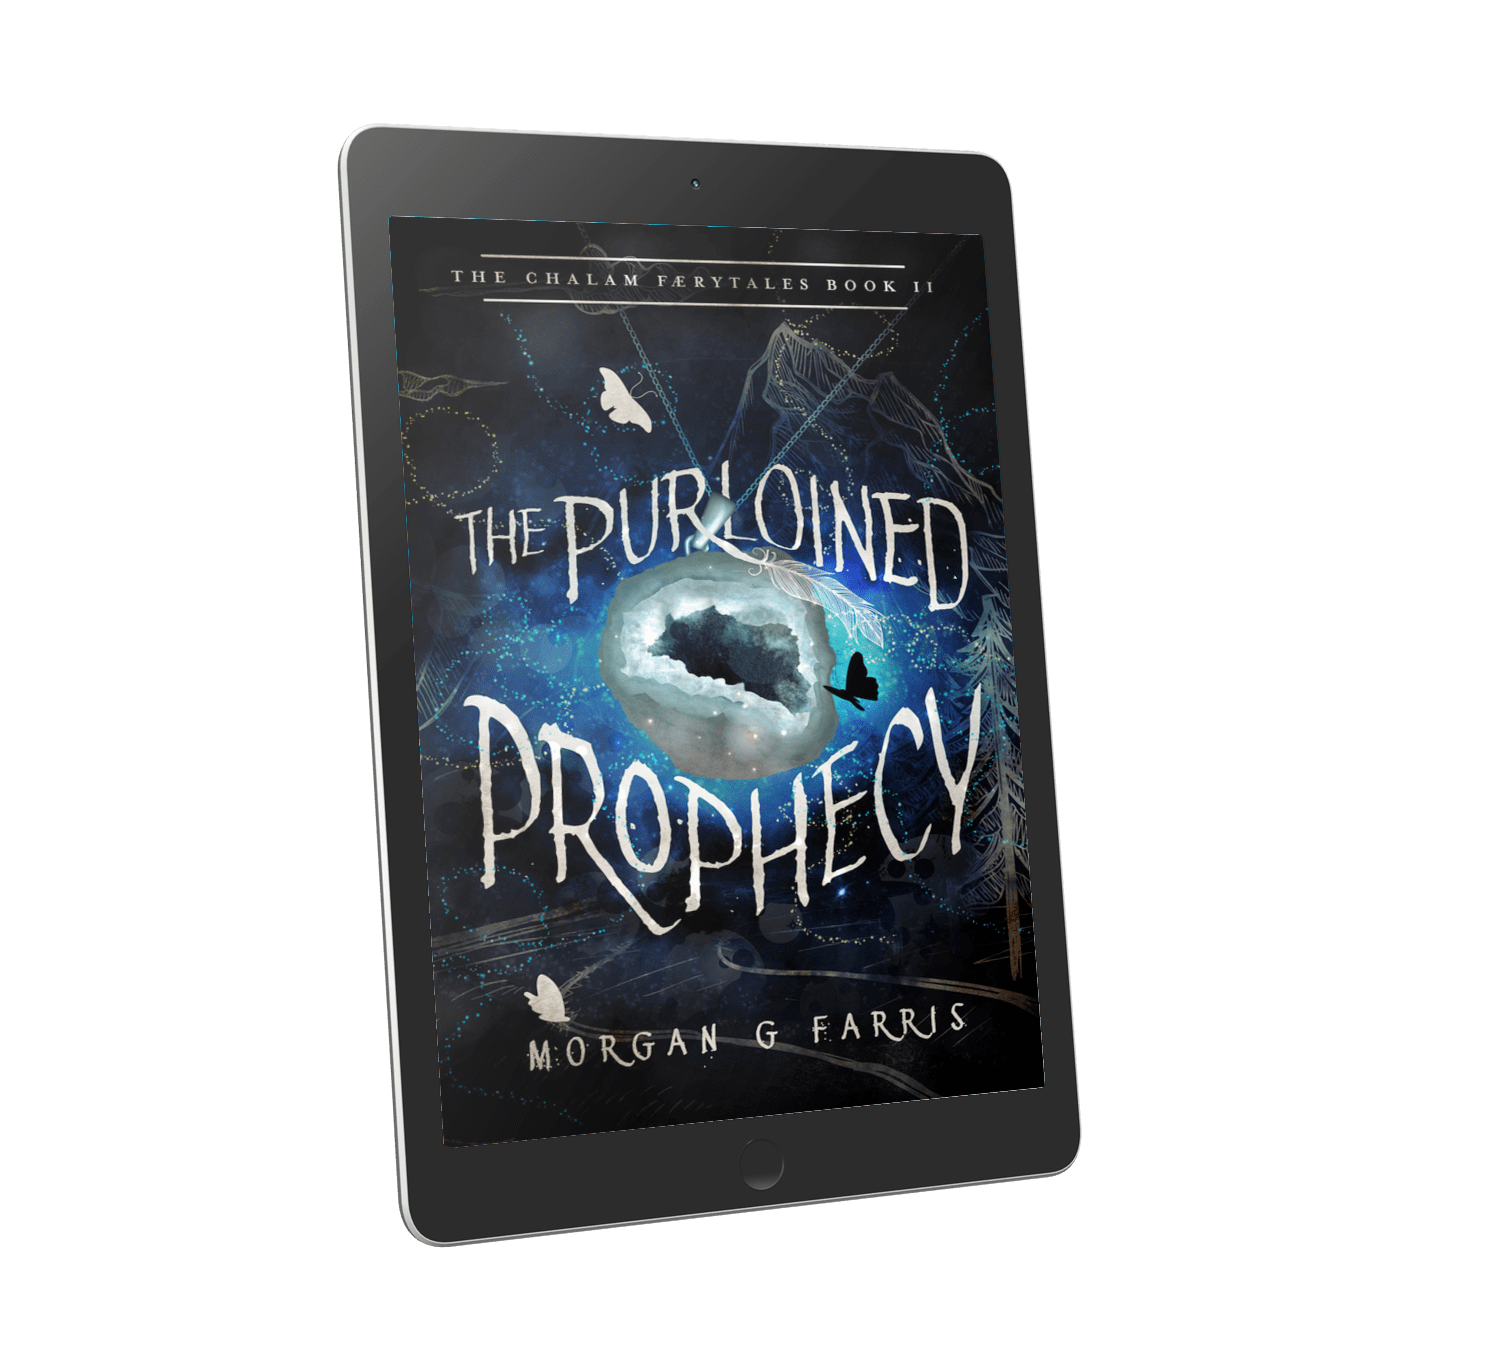 The Purloined Prophecy